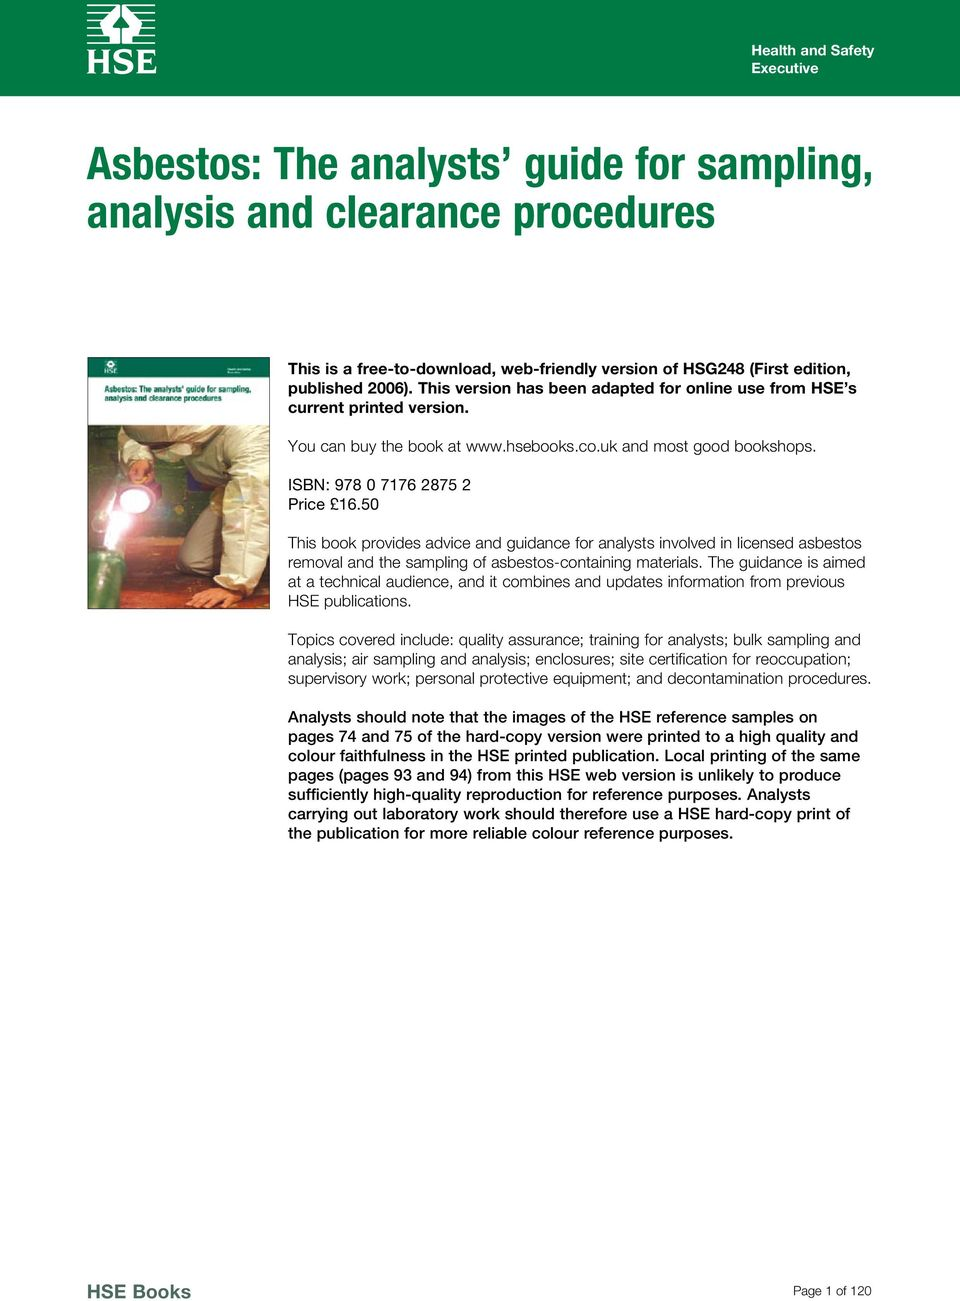 50 This book provides advice and guidance for analysts involved in licensed asbestos removal and the sampling of asbestos-containing materials.